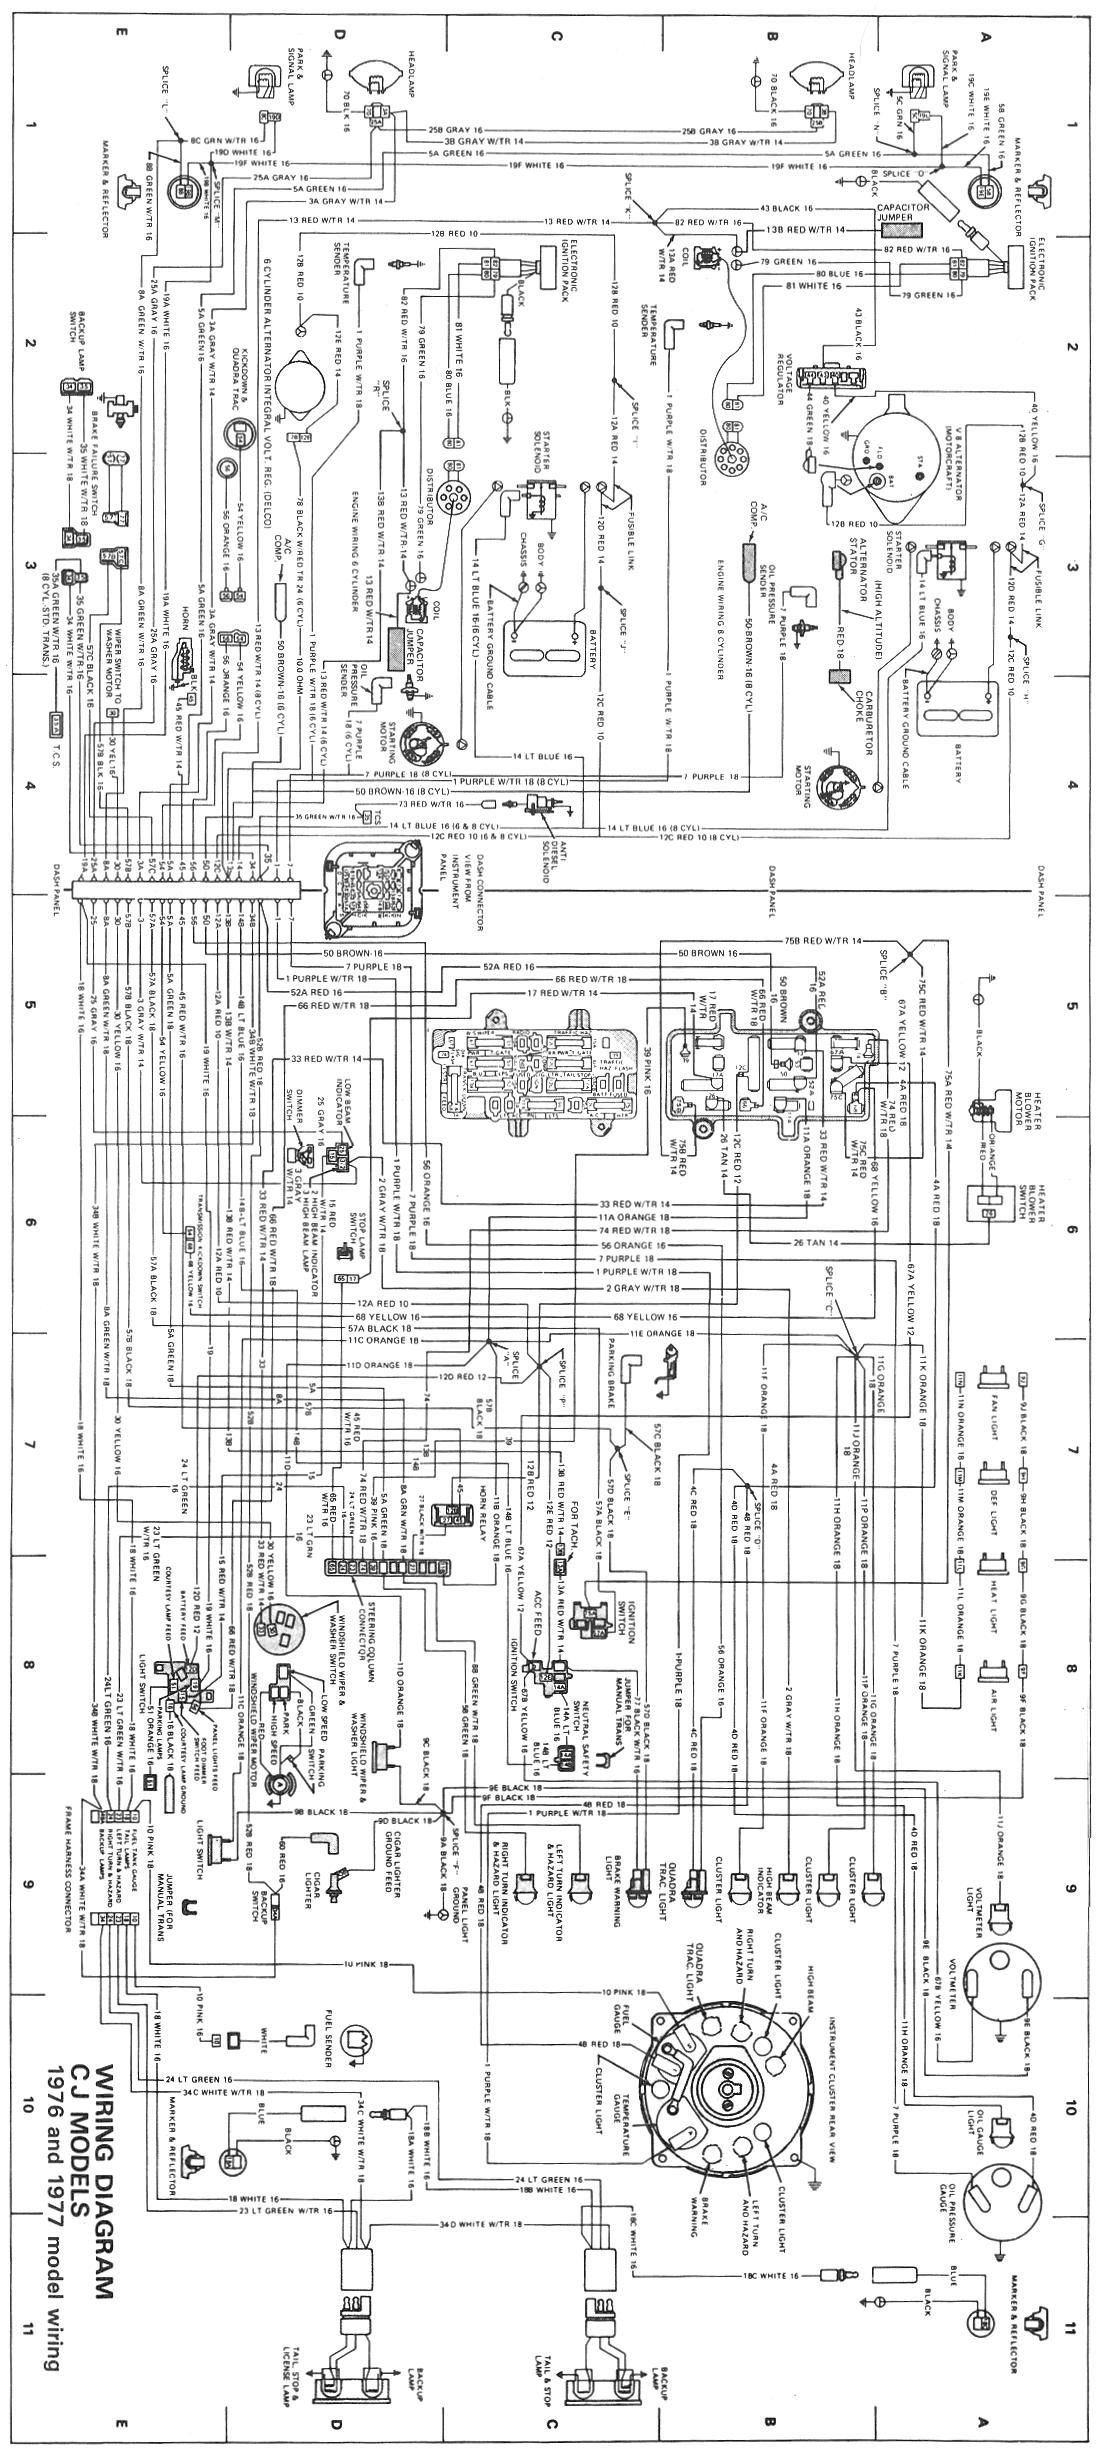 hight resolution of jeep wiring diagrams 1976 and 1977 cj jeep wiring pinterest 1985 jeep cj7 electrical diagram 1977 jeep cj7 diagram